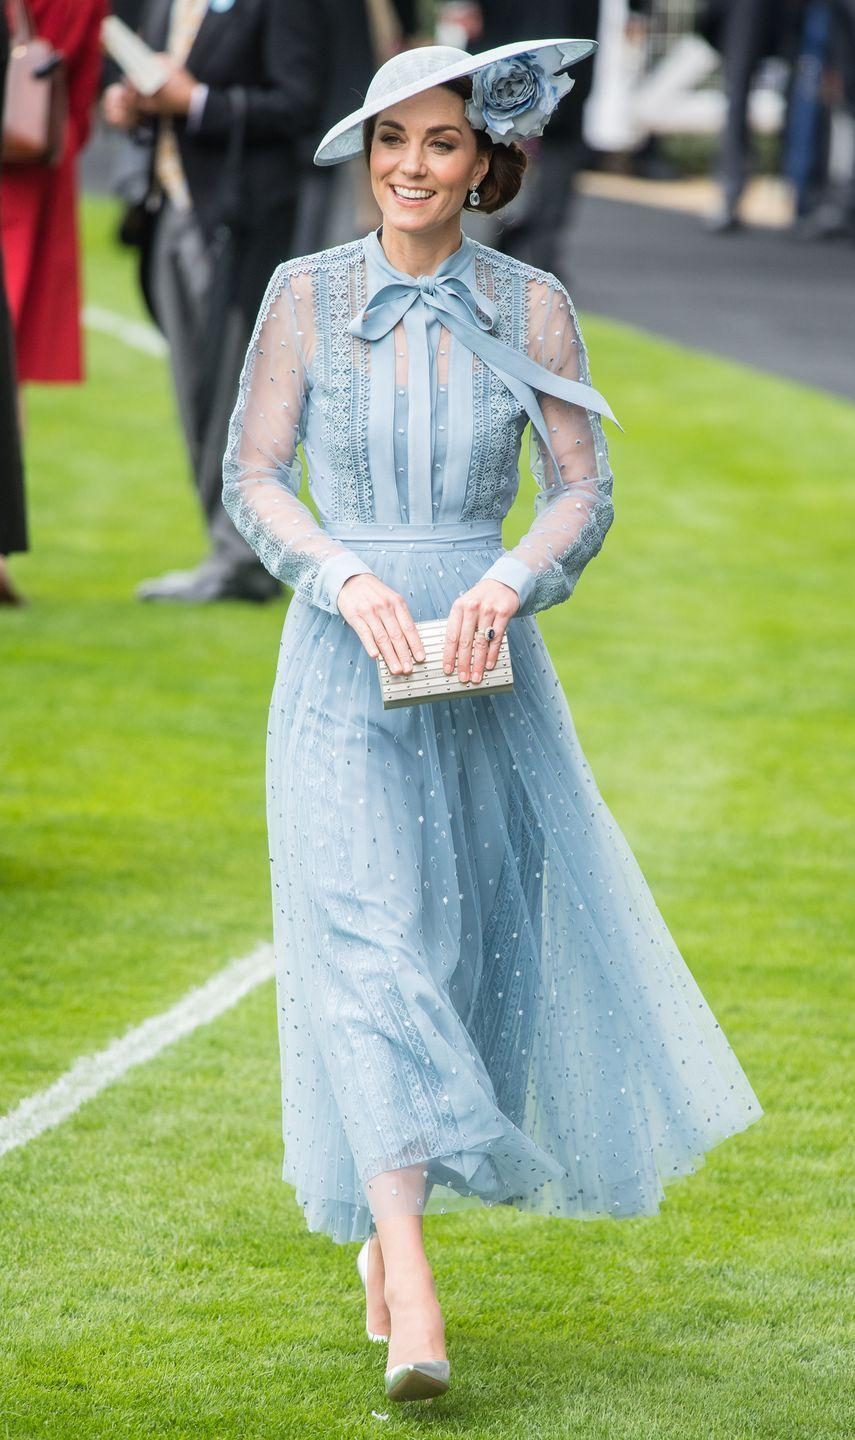 """<p><a href=""""https://www.townandcountrymag.com/style/fashion-trends/a28072096/kate-middleton-elie-saab-blue-dress-royal-ascot-day-1-2019/"""" rel=""""nofollow noopener"""" target=""""_blank"""" data-ylk=""""slk:Kate chose an Elie Saab dress and matching pale blue hat for the first day of Royal Ascot"""" class=""""link rapid-noclick-resp"""">Kate chose an Elie Saab dress and matching pale blue hat for the first day of Royal Ascot</a>. Silver heels and a metallic clutch finished off the look.</p>"""